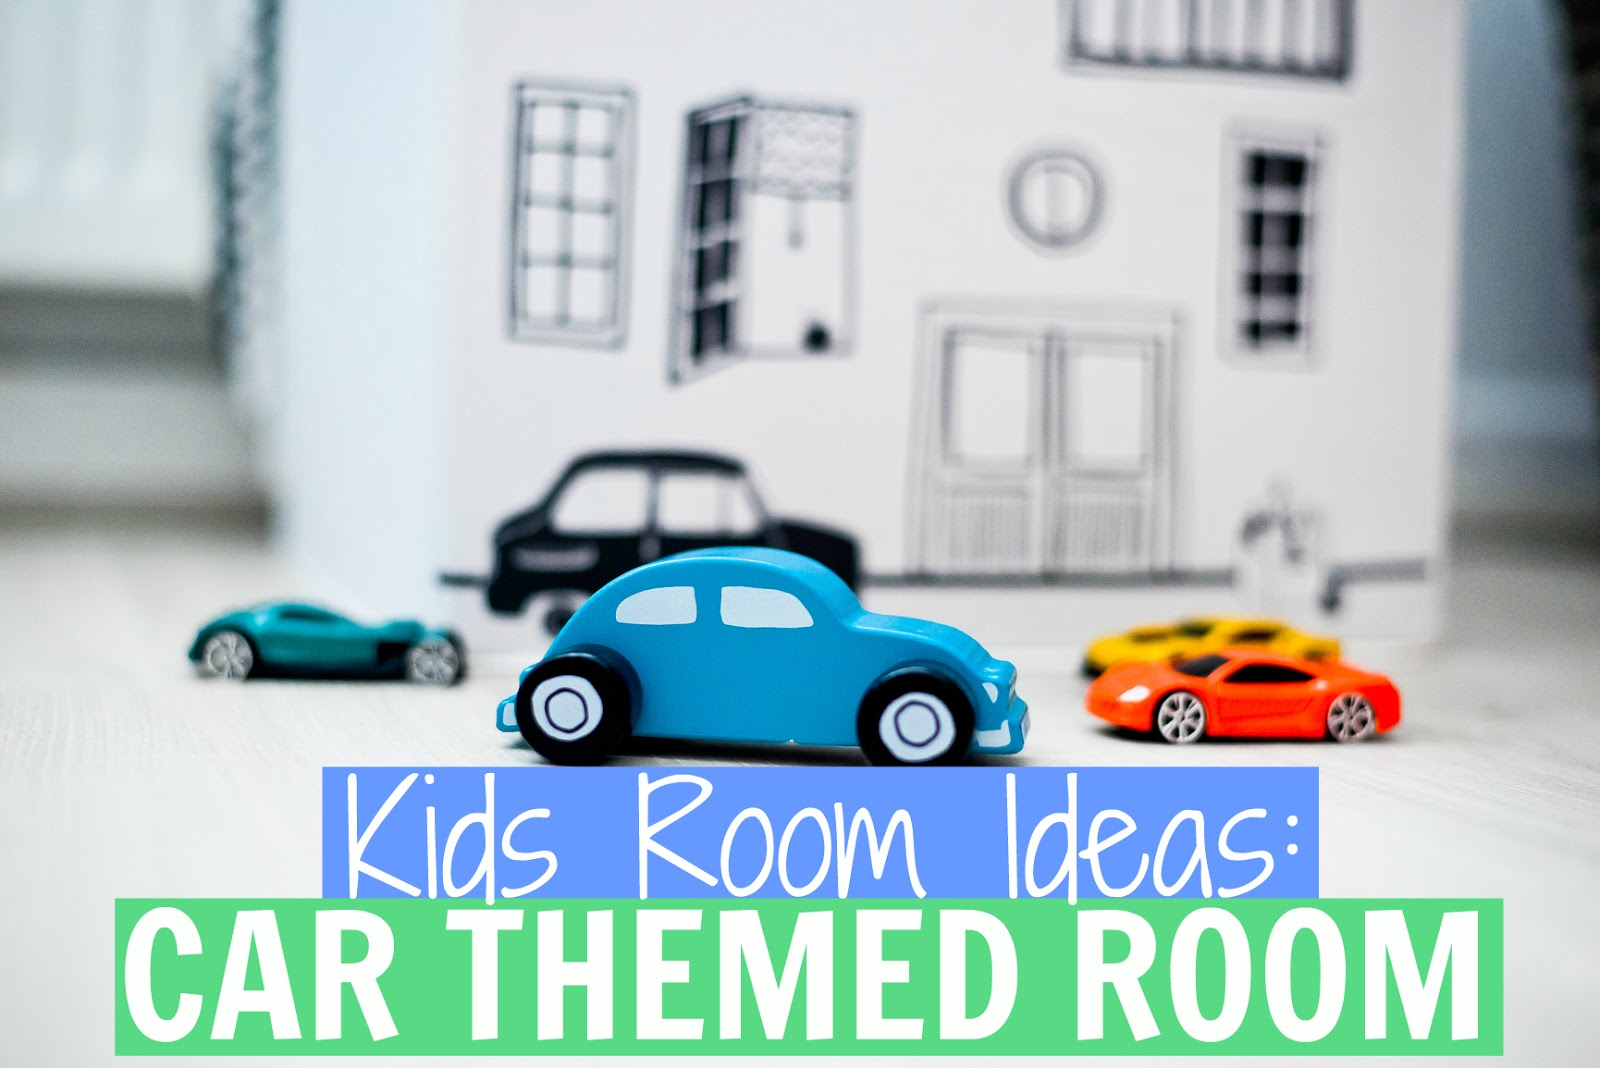 car bedroom, car themed room, kids car room